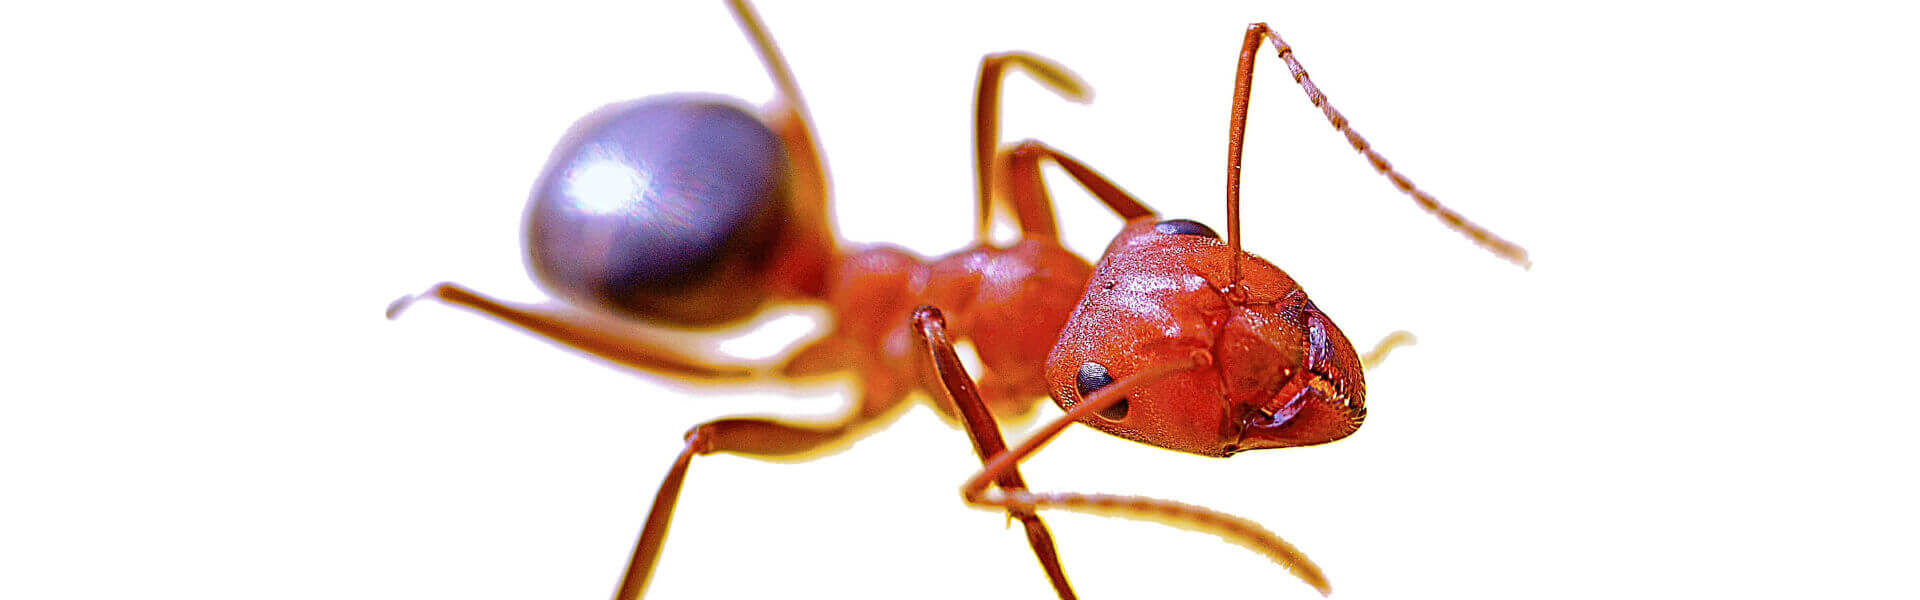 Ant close-up